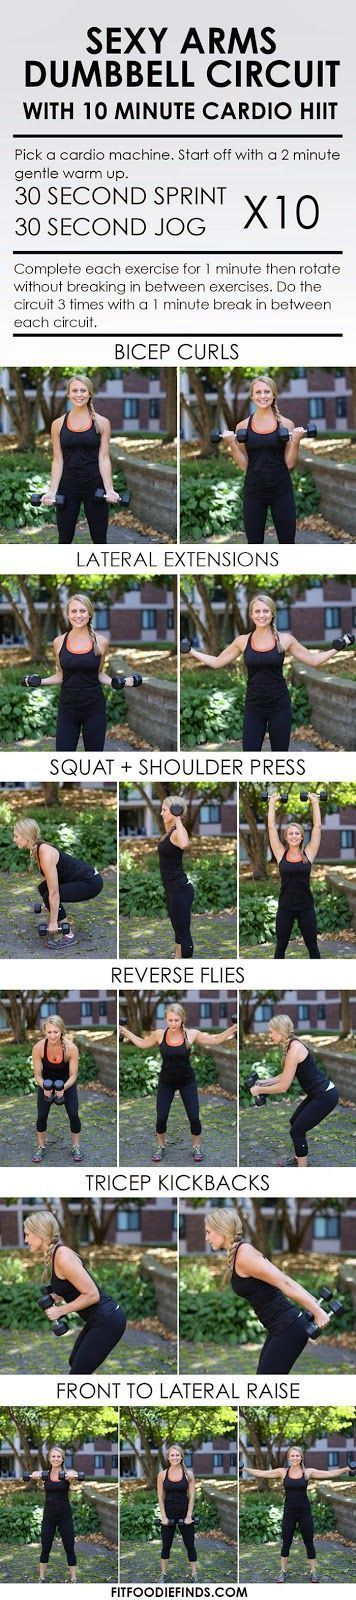 Sexy Arms Dumbbell Circuit Workout with 10 Minute Cardio HIIT   Healthy fitness and beauty: